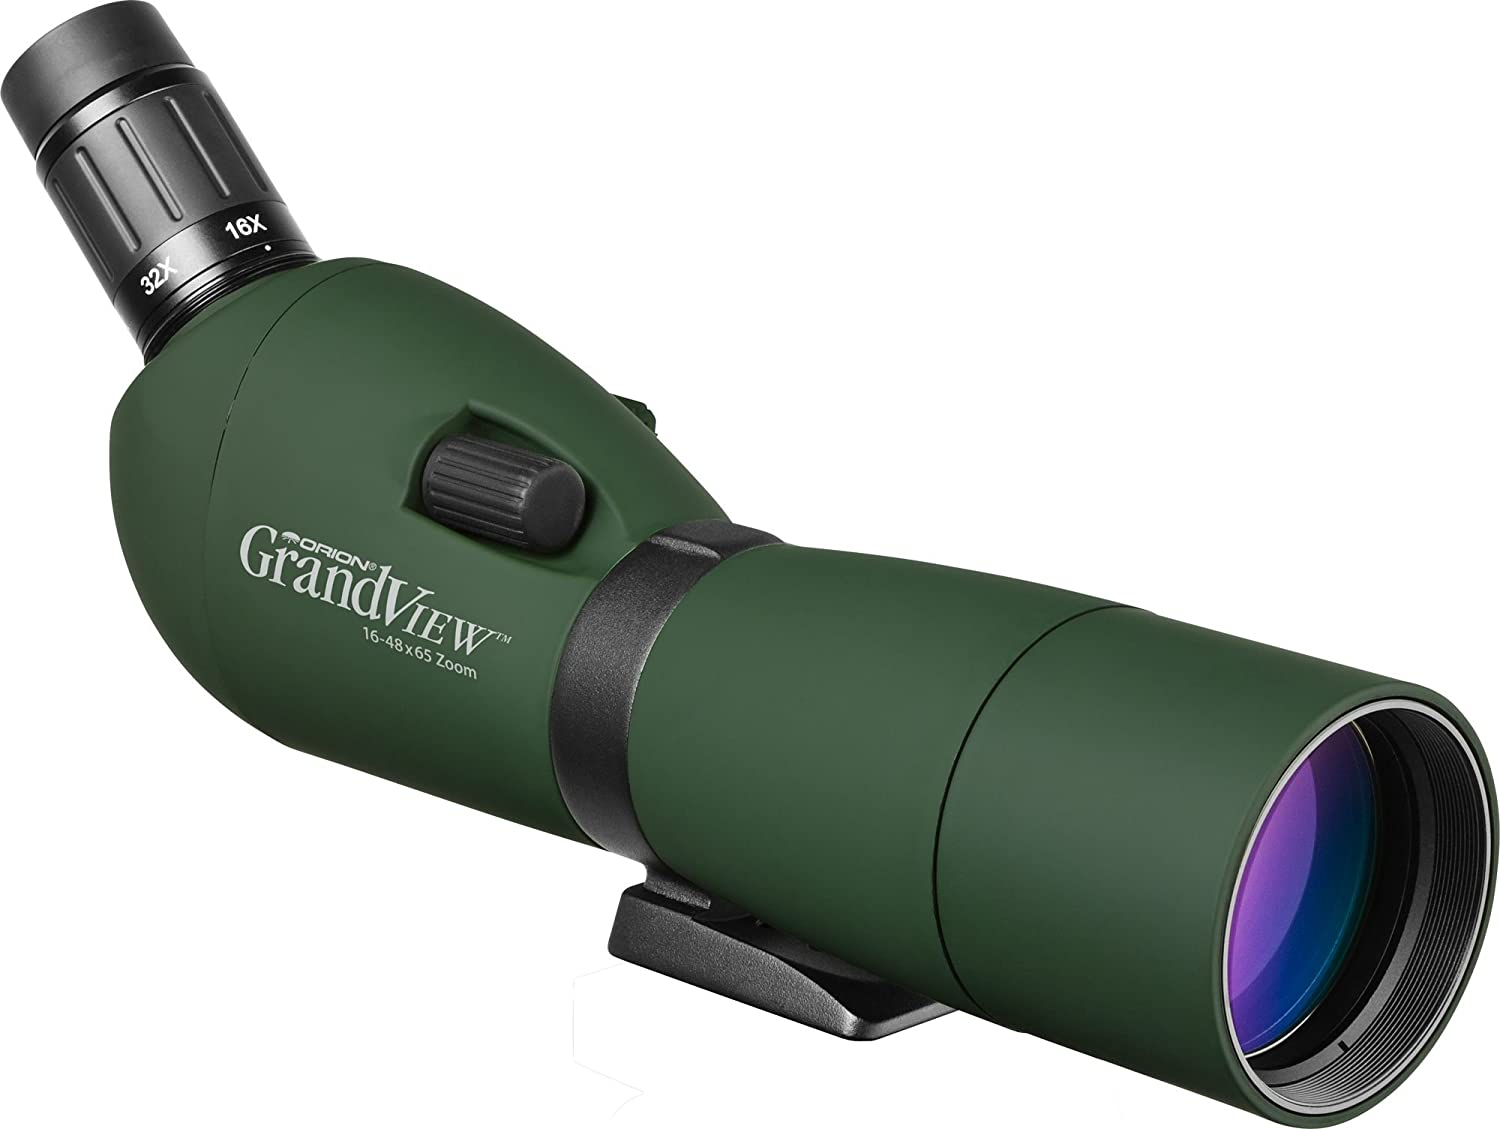 Orion 52205 GrandView 16-48x65mm Waterproof Zoom Spotting Scope Green